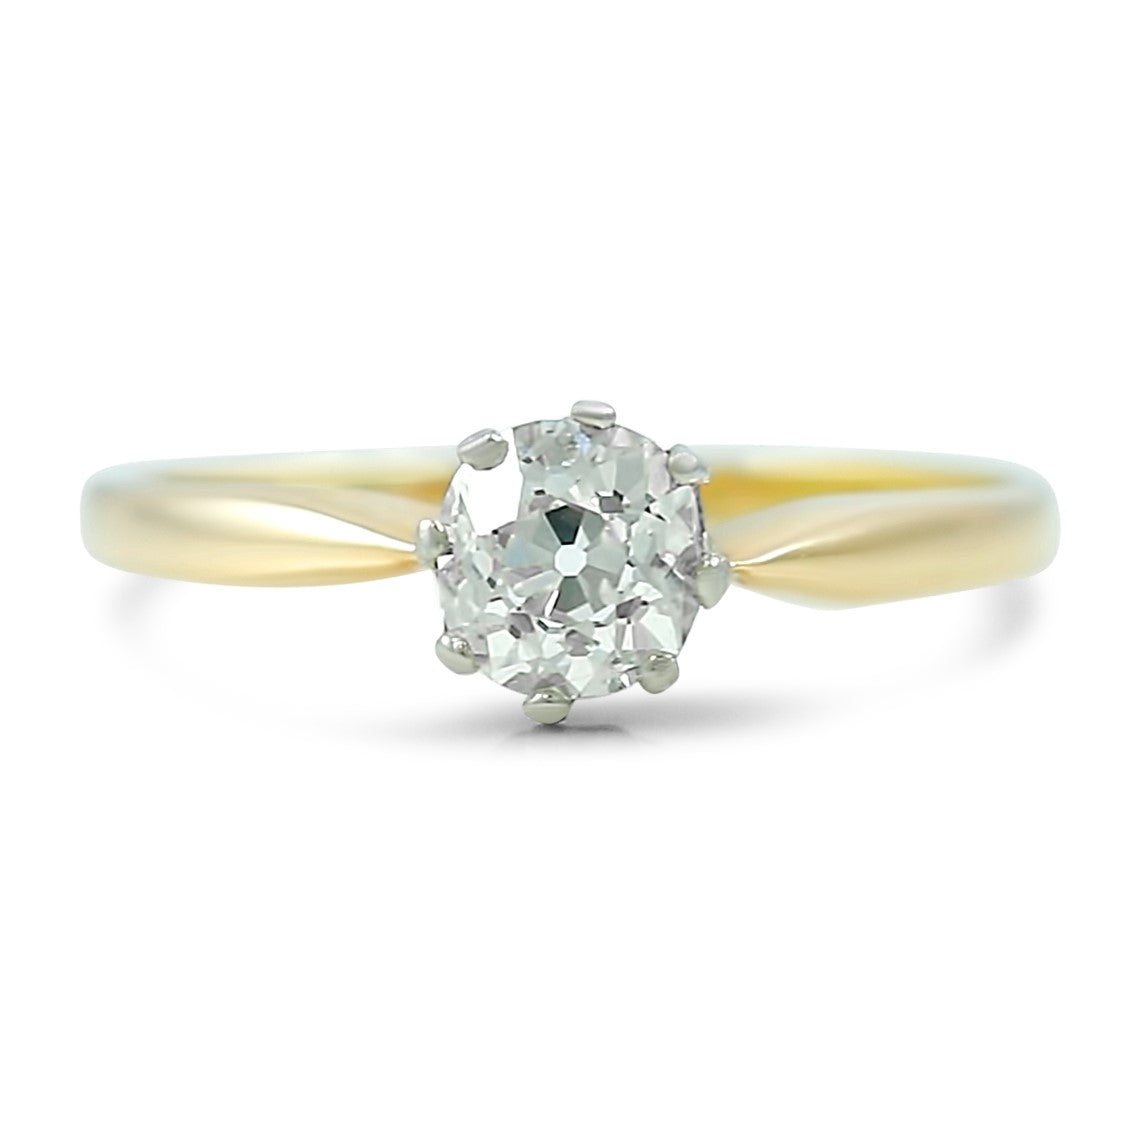 14k yellow gold and platinum solitaire old mine cut diamond antique engagement ring with tapered setting